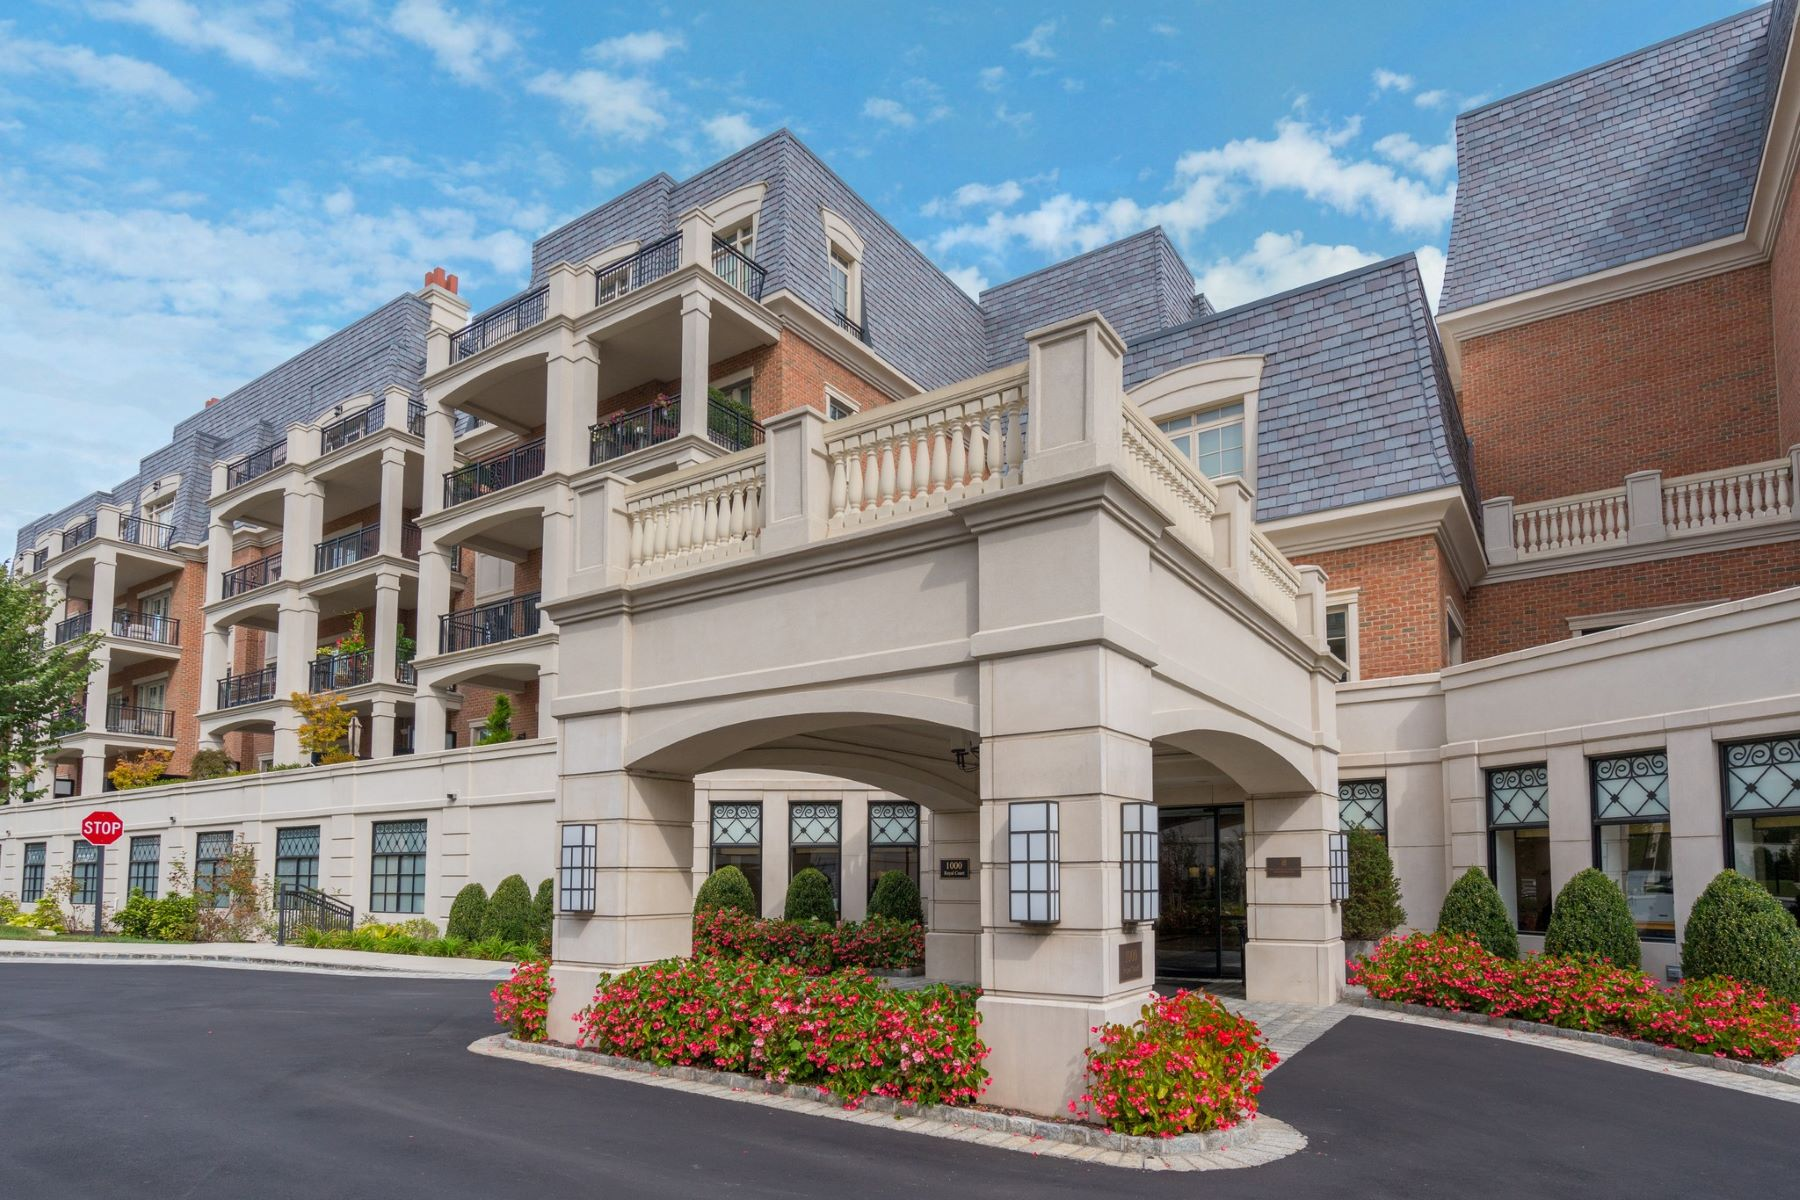 Condominiums for Sale at North Hills 1000 Royal Ct , 1107 North Hills, New York 11040 United States